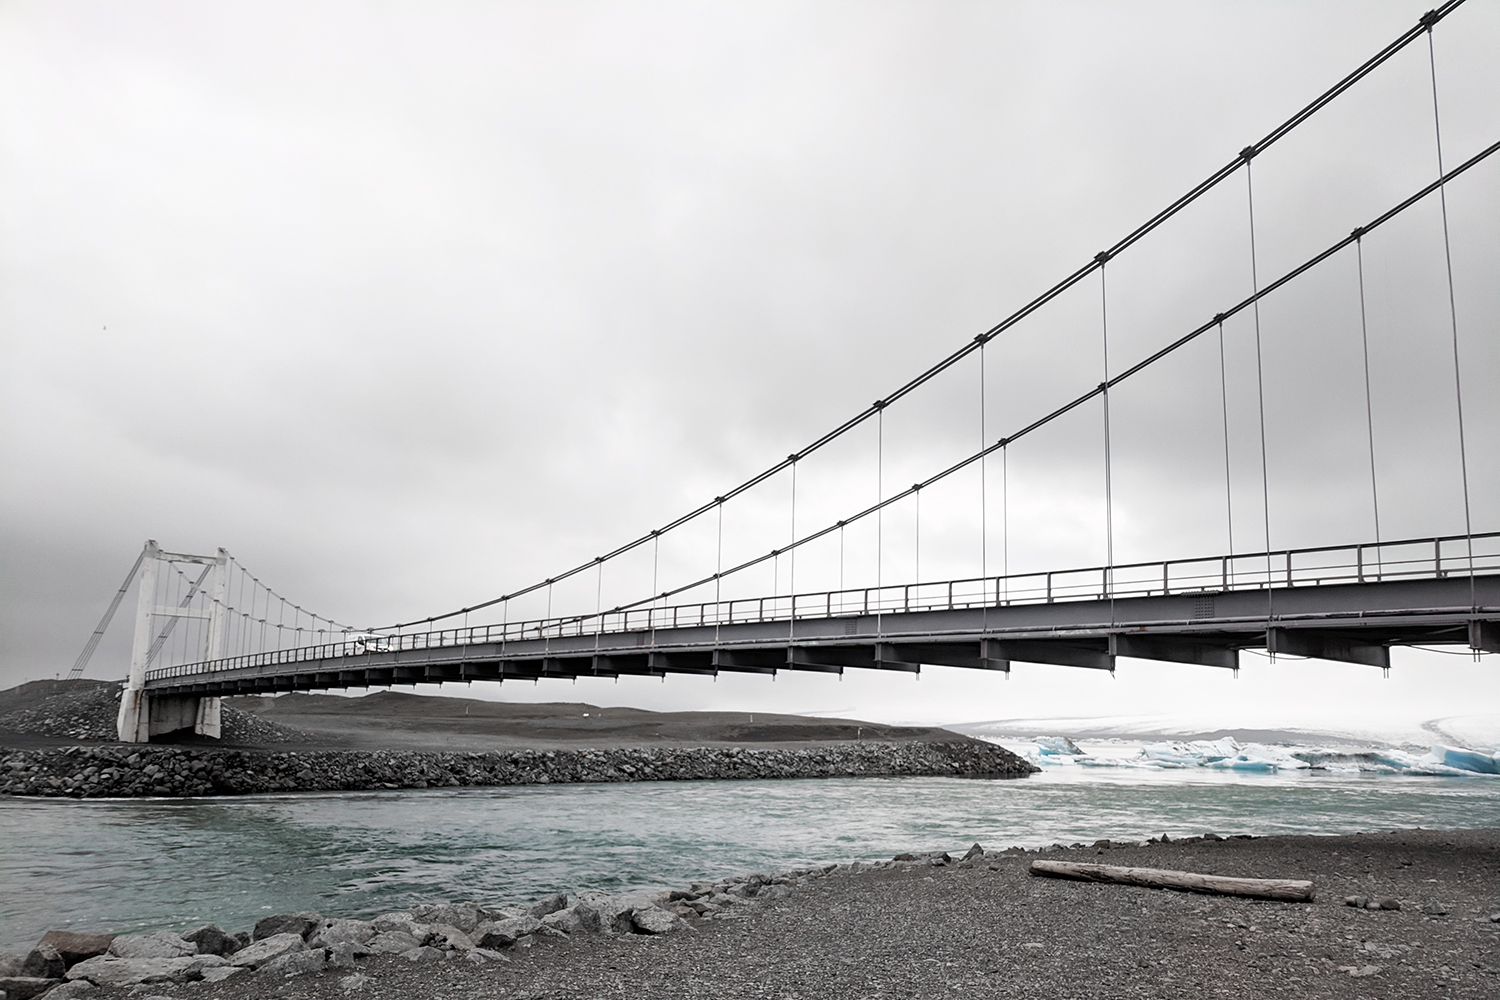 09iceland-jokulsarlon-glacier-lagoon-bridge-travel